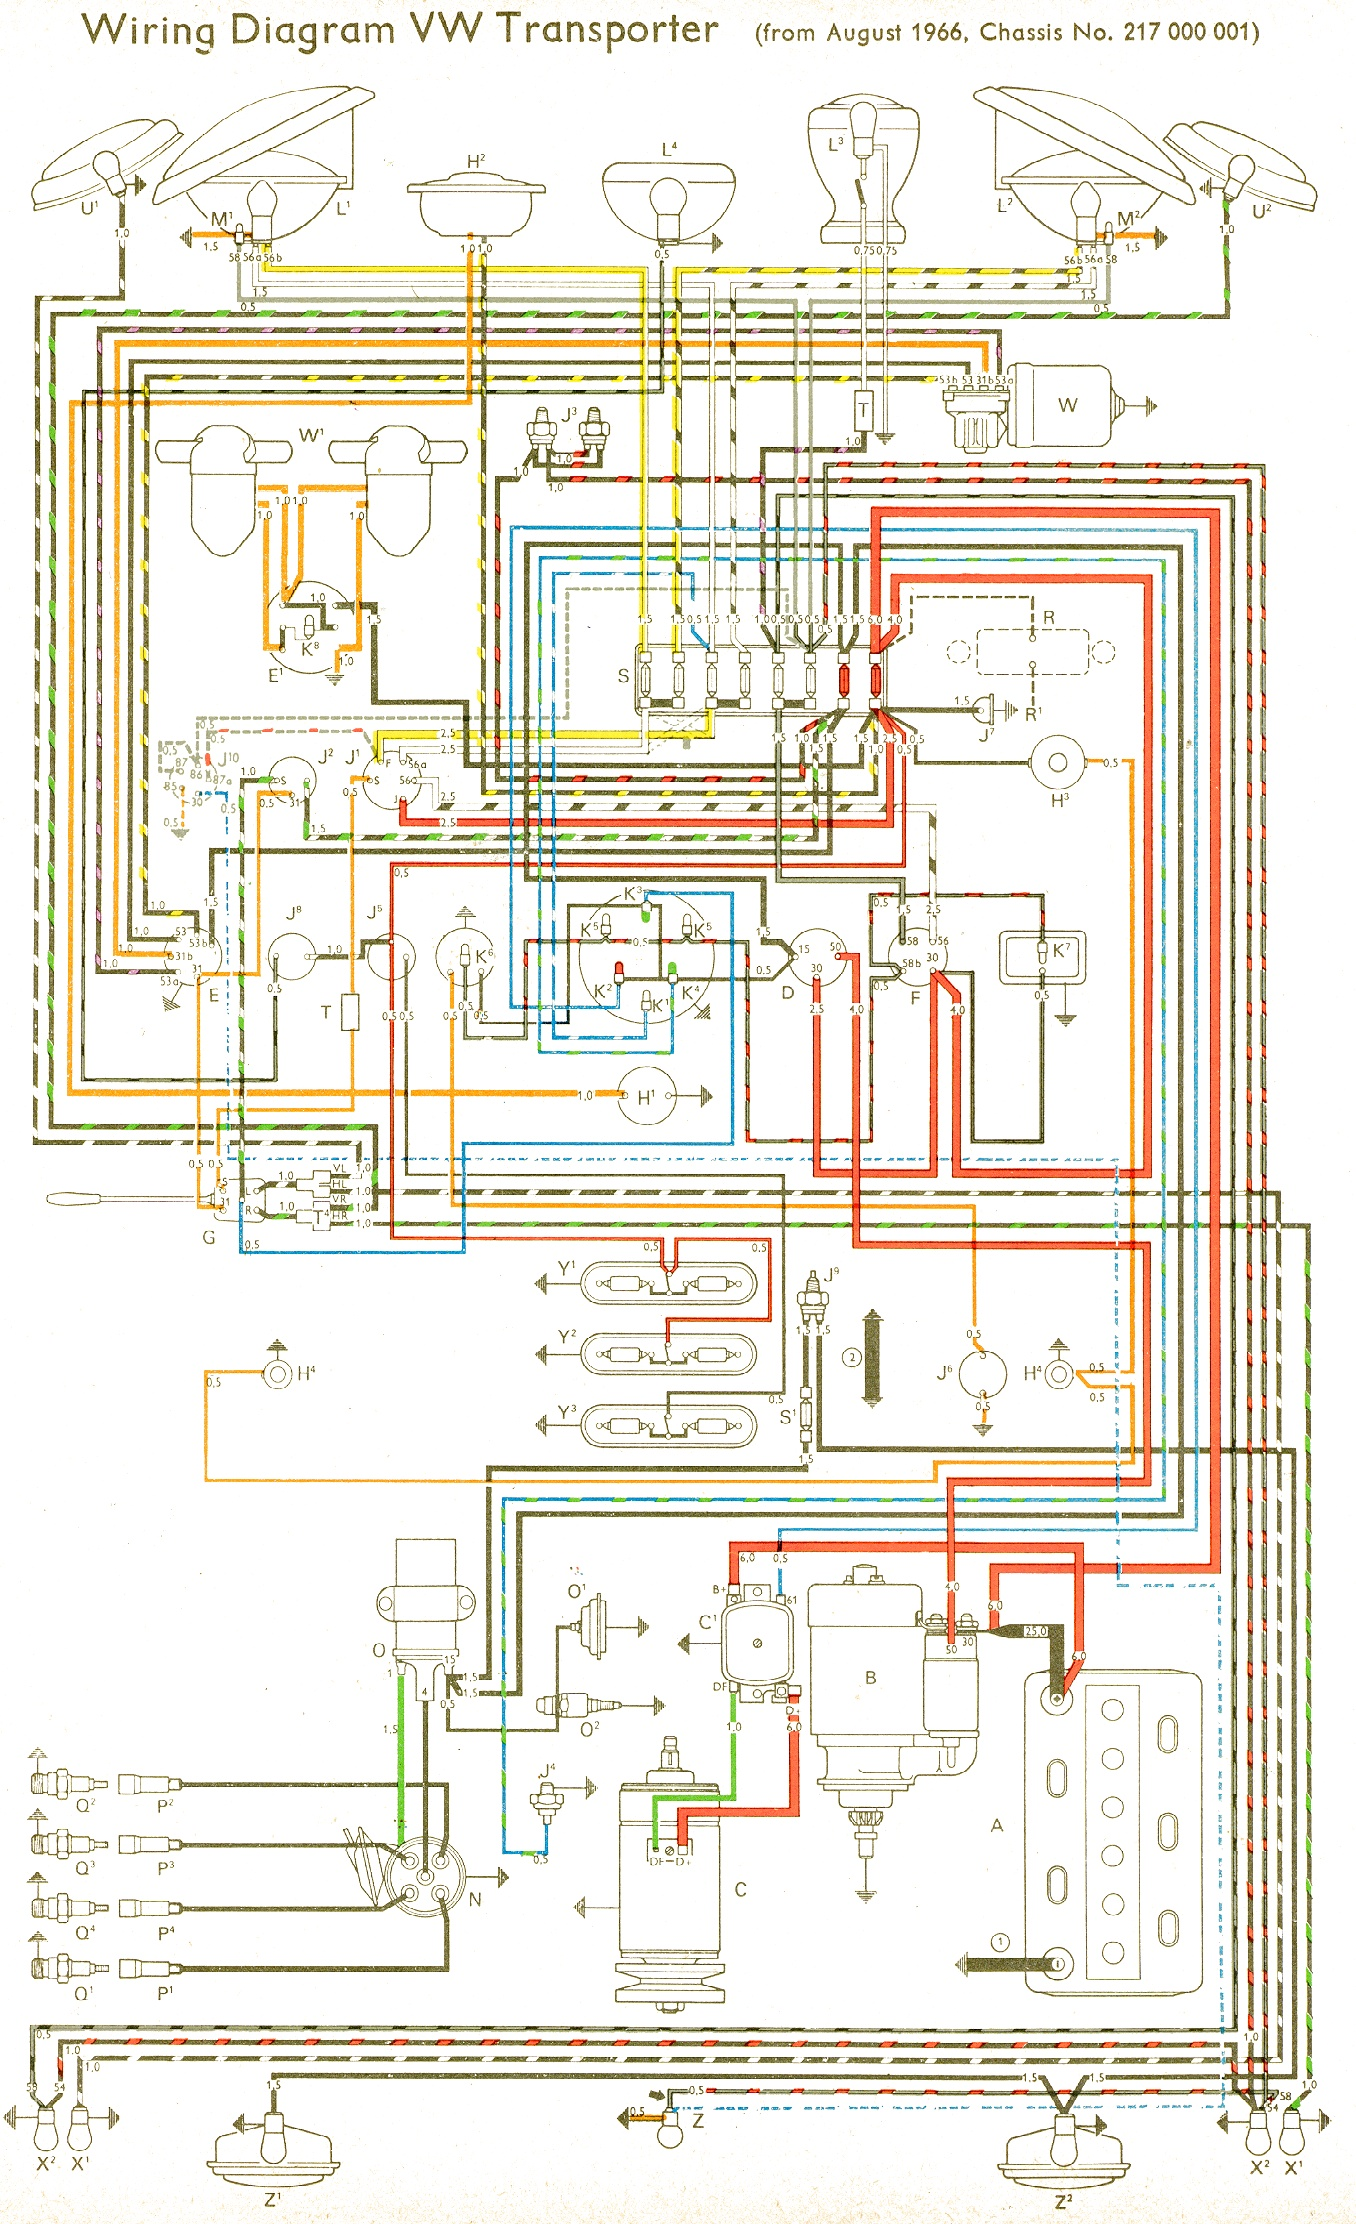 bus 66 bus wiring diagram vw wiring harness diagram \u2022 wiring diagrams j 1971 vw bus wiring diagram at bakdesigns.co